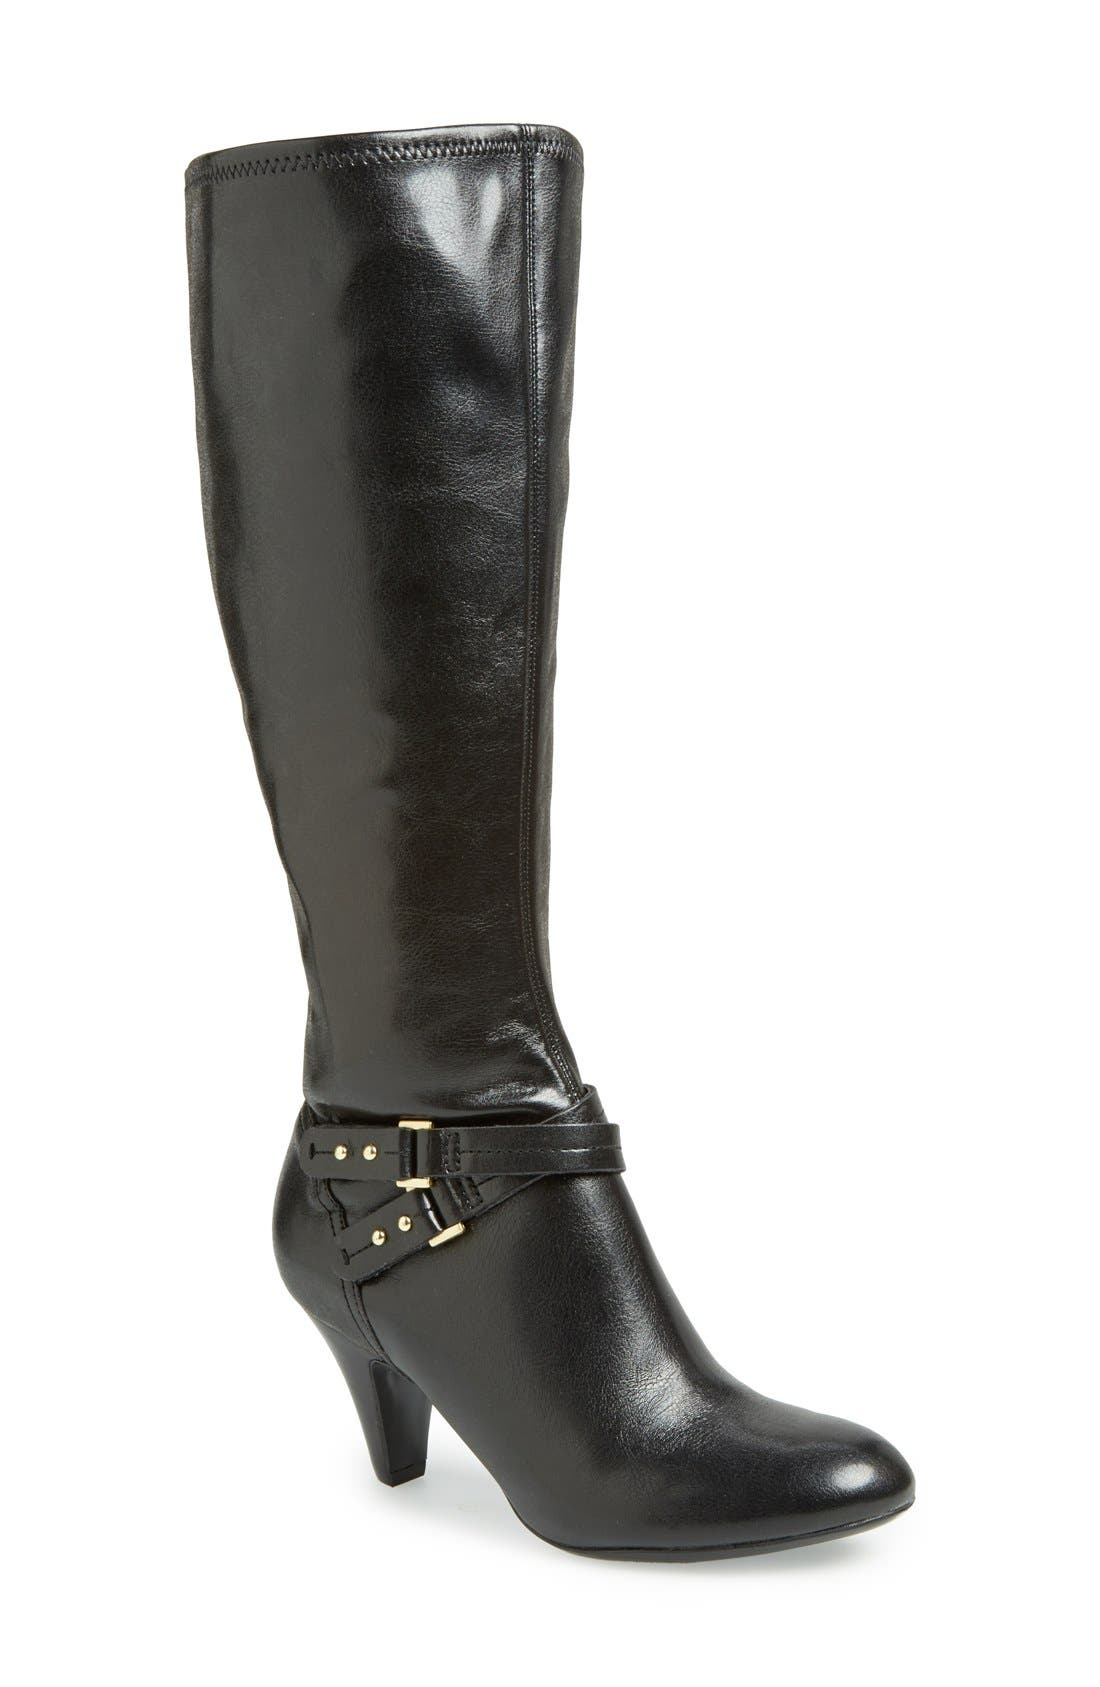 Alternate Image 1 Selected - Naturalizer 'Byron' Knee High Boot (Women)(Wide Calf)